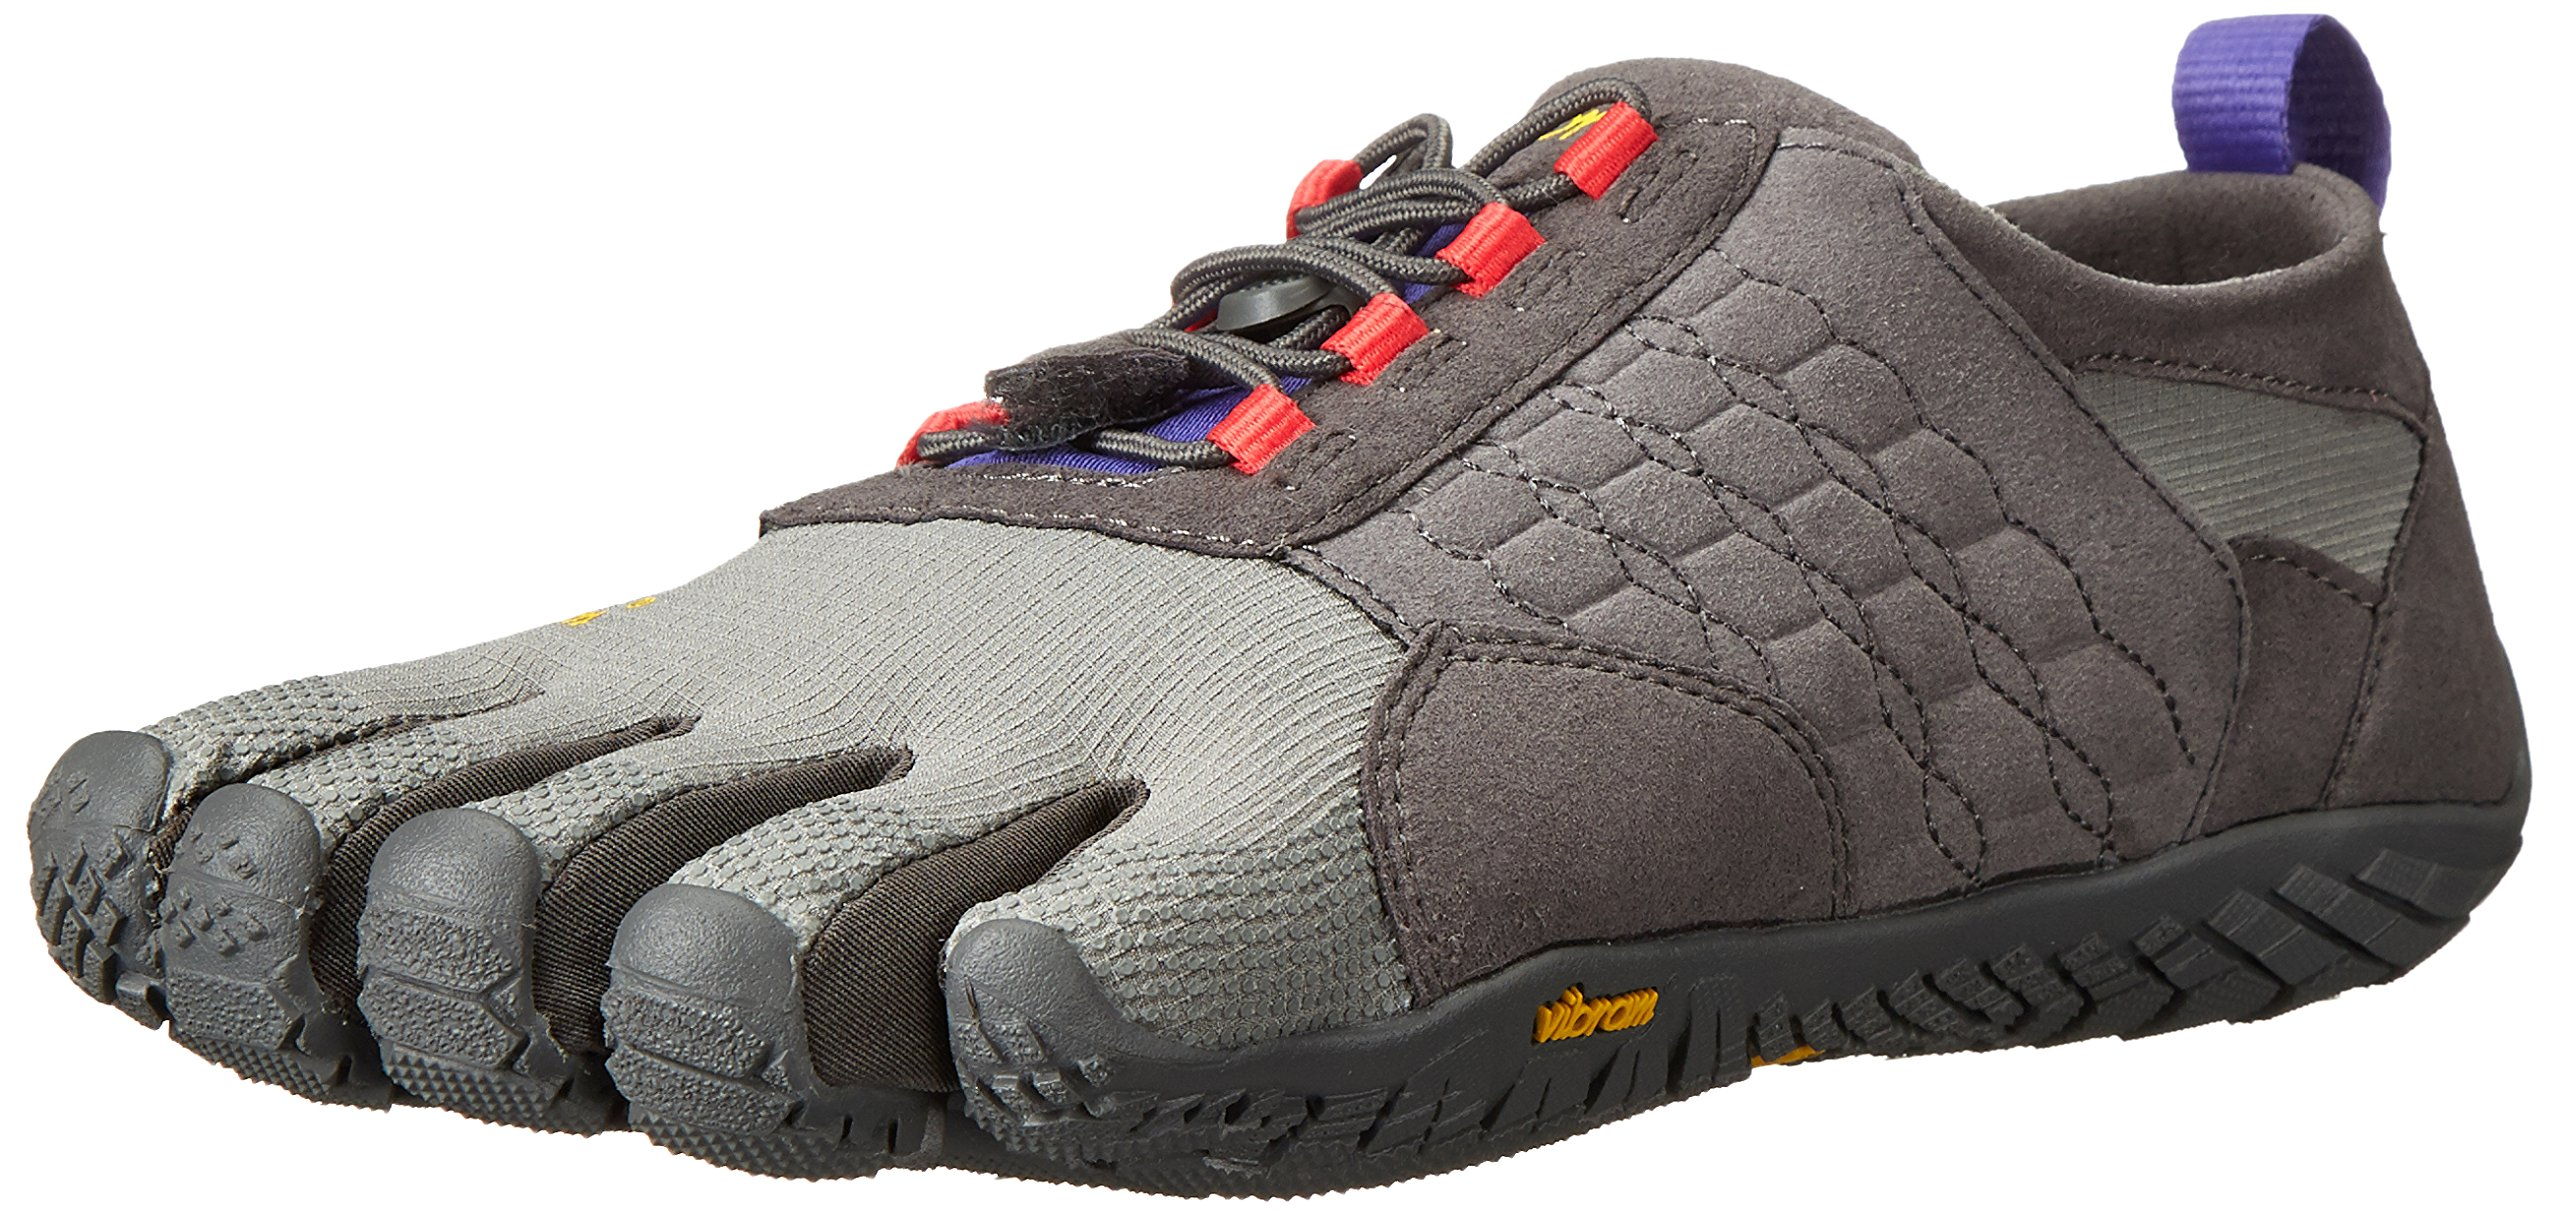 Vibram Women's Trek Ascent Light Hiking Shoe, Dark Grey/Lilac,39 EU/8 M US by Vibram (Image #1)